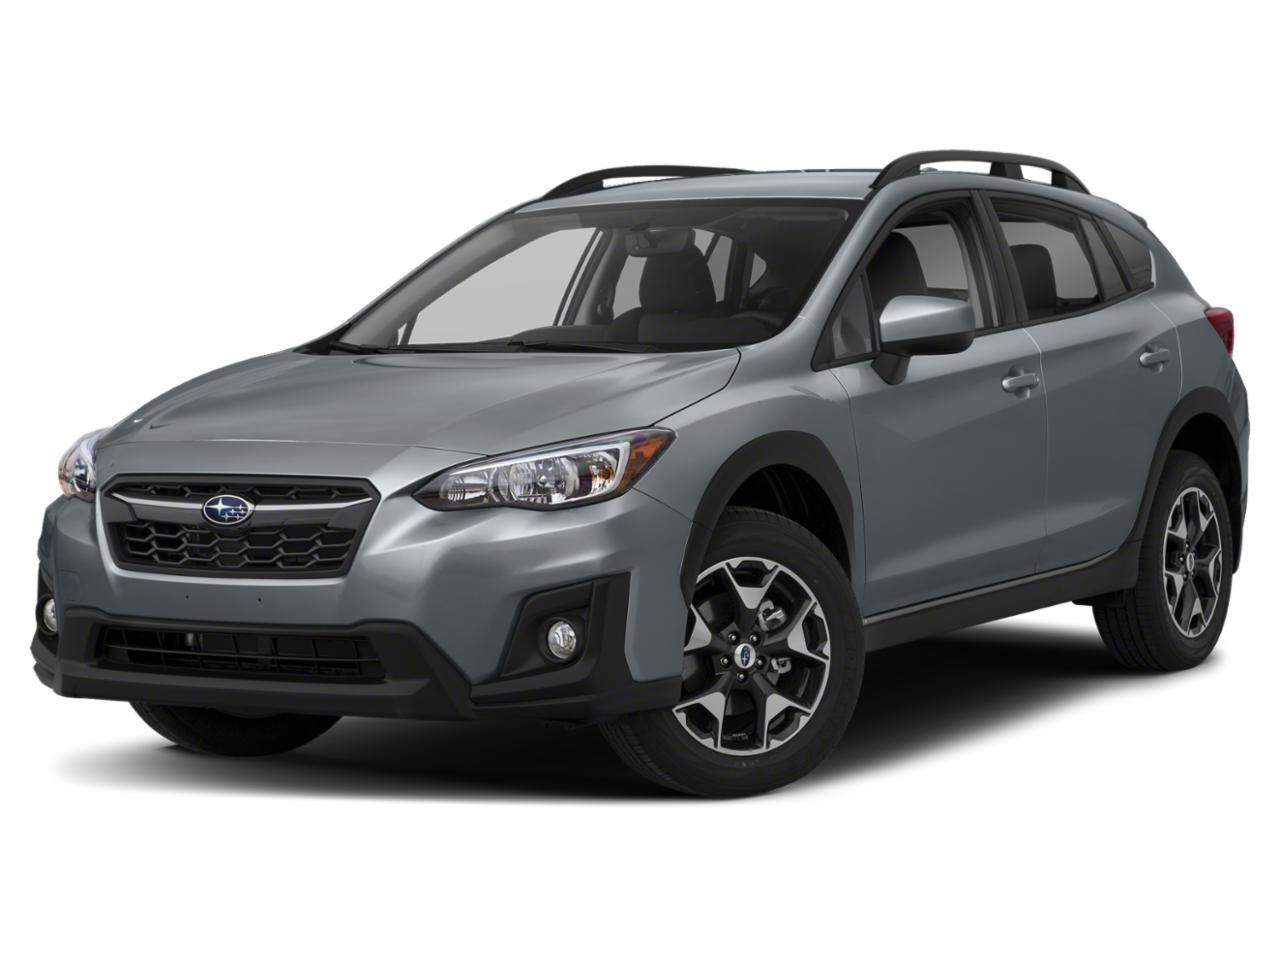 2020 Subaru Crosstrek Vehicle Photo in Cape May Court House, NJ 08210